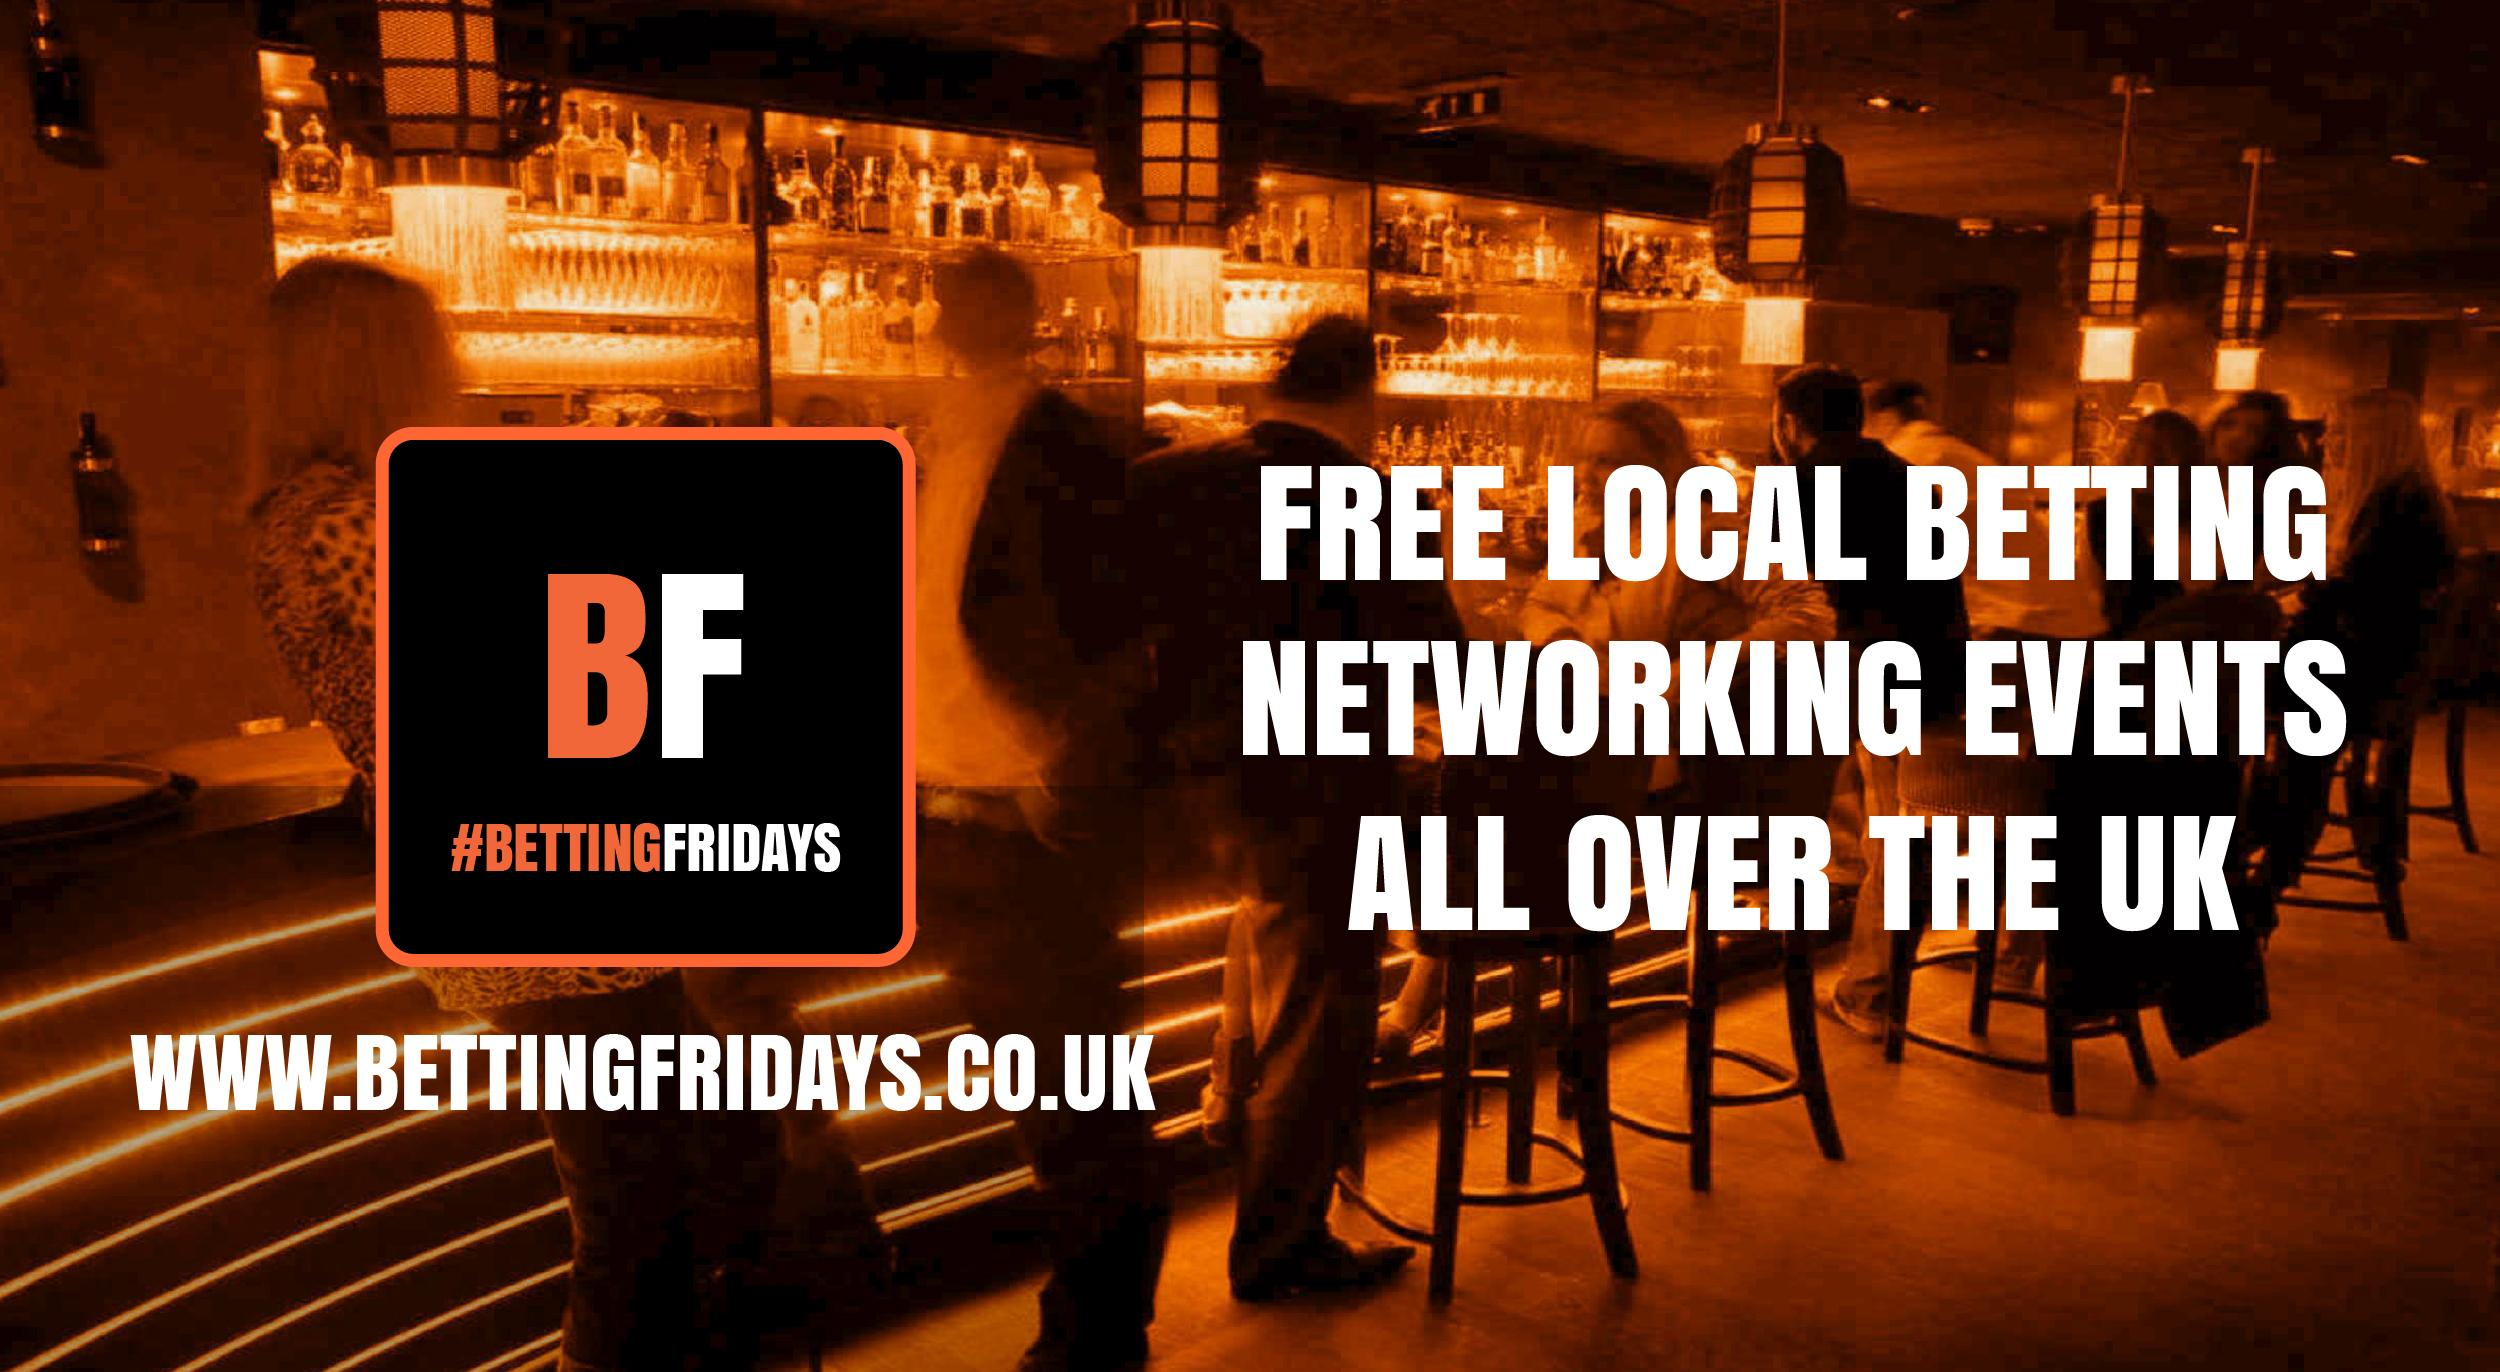 Betting Fridays! Free betting networking event in Halifax